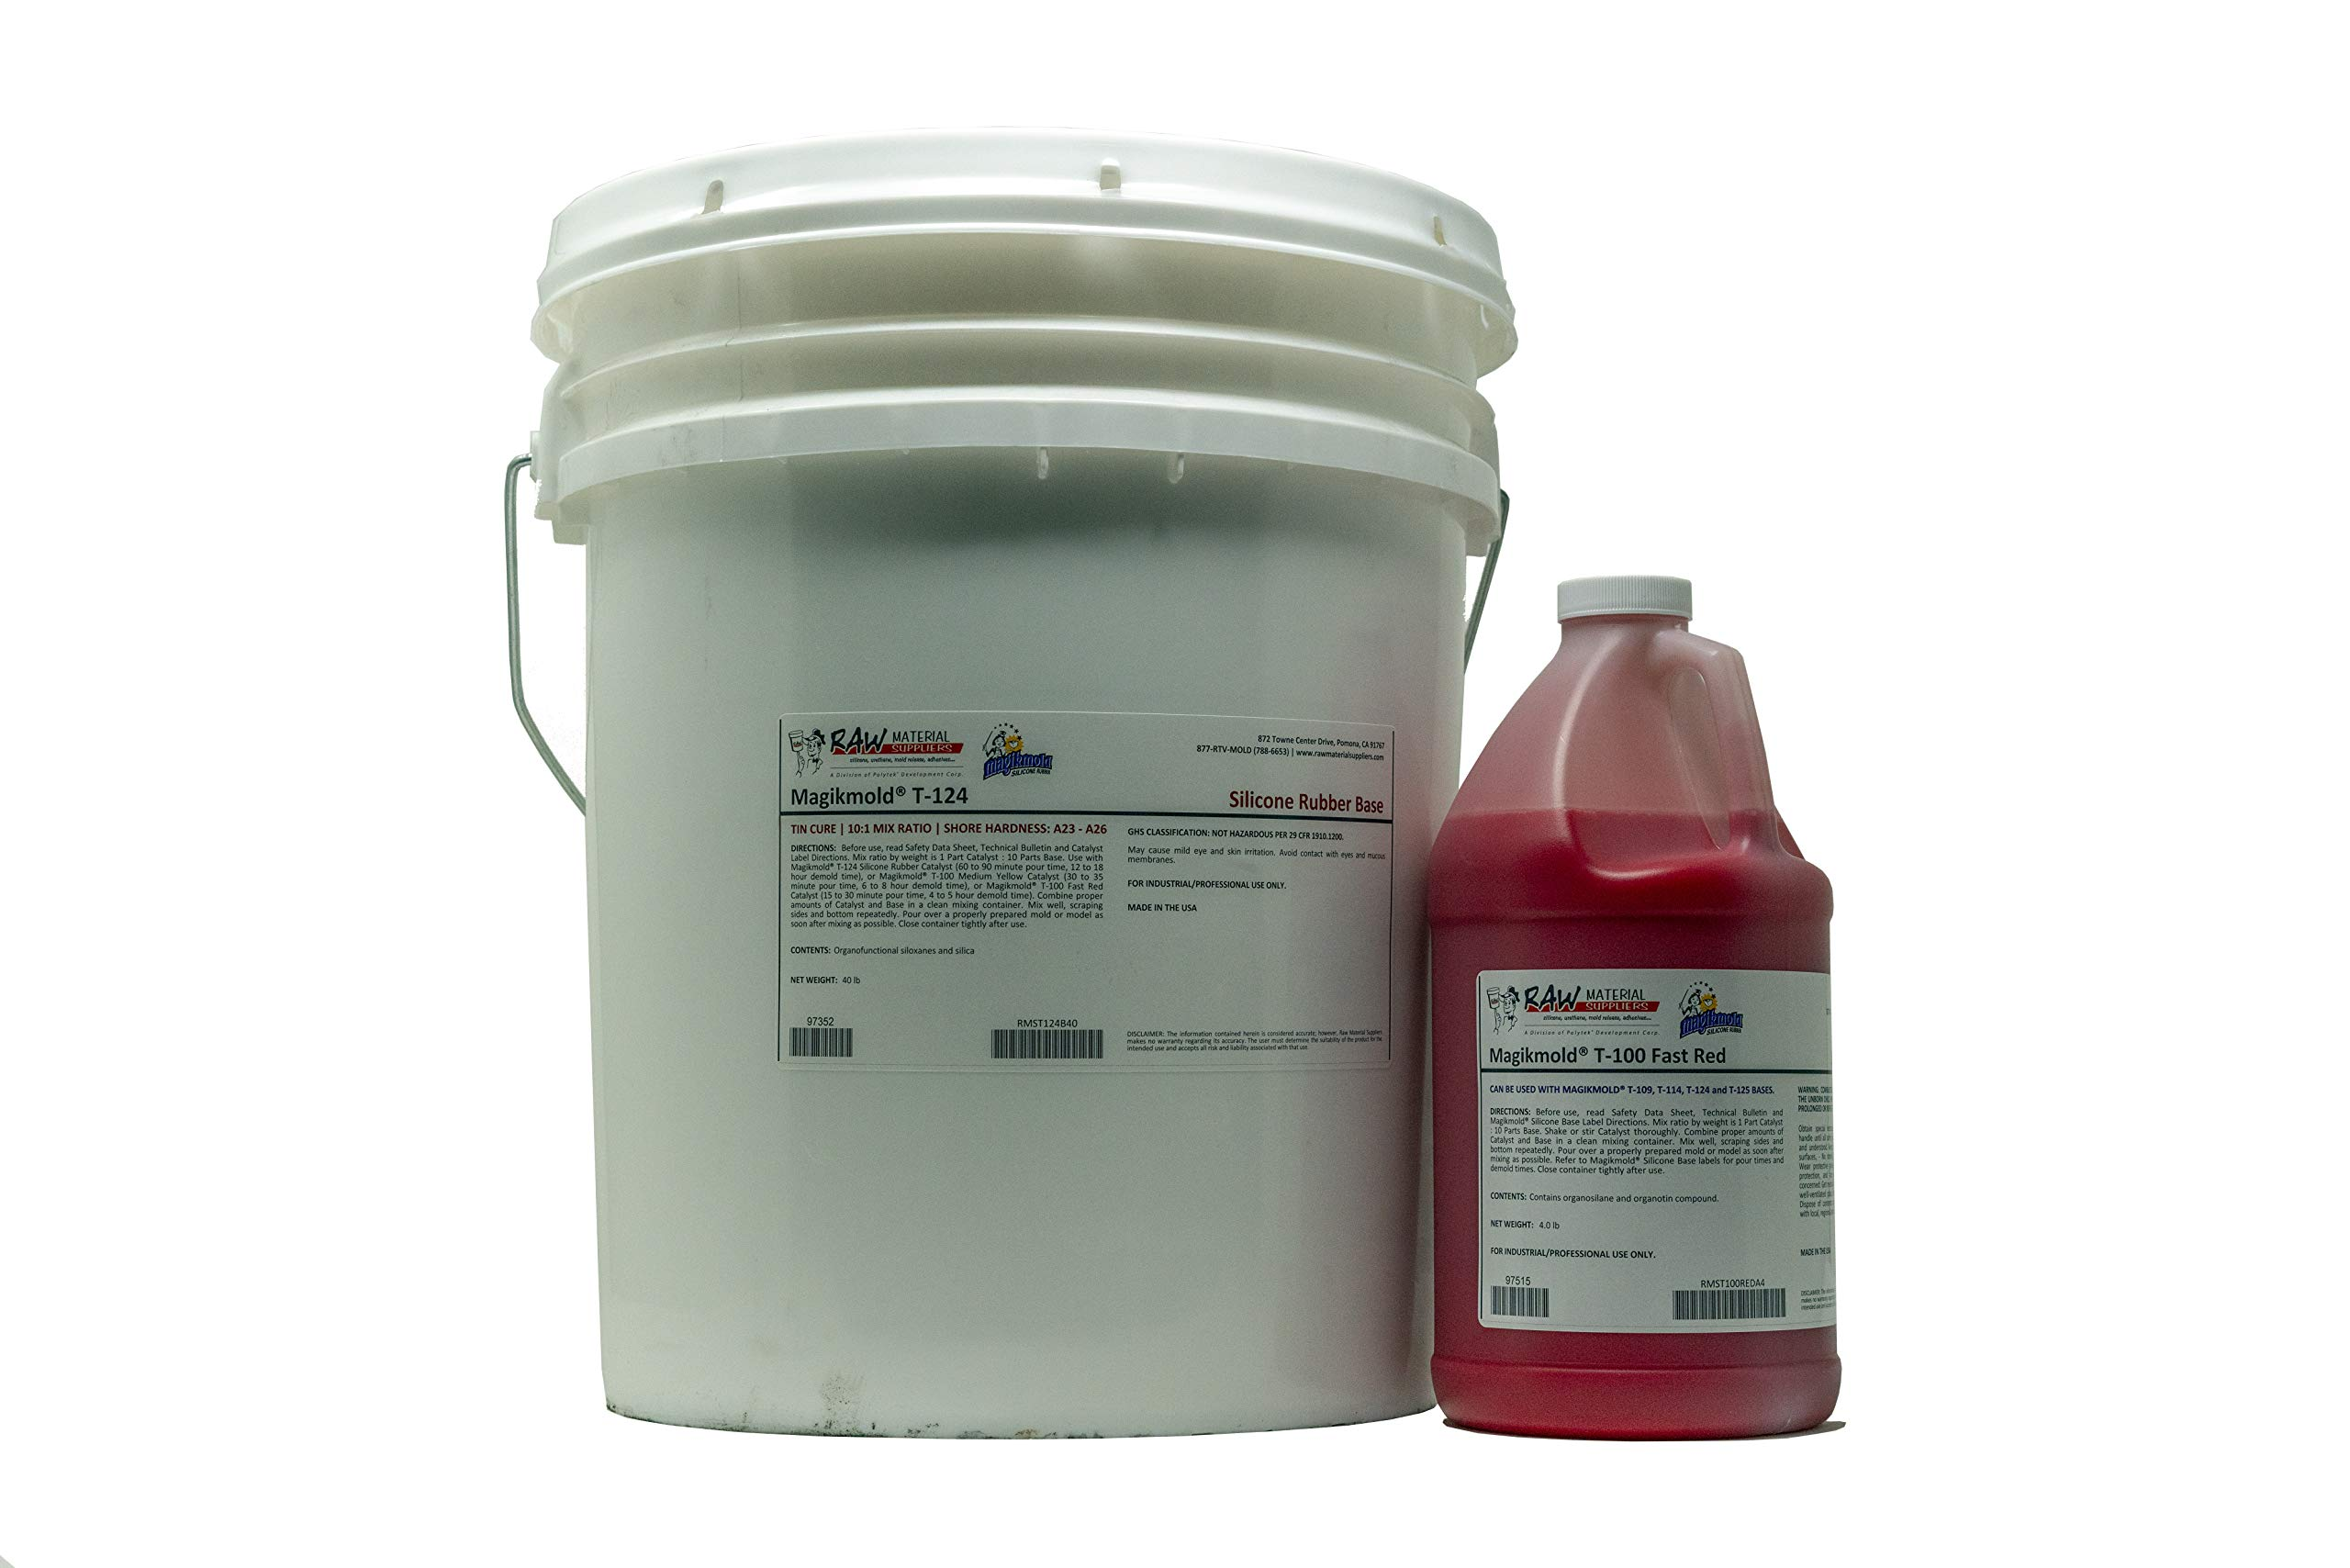 Magikmold T-124 Tin Cure Silicone - 44lb Kit - Fast Red Catalyst